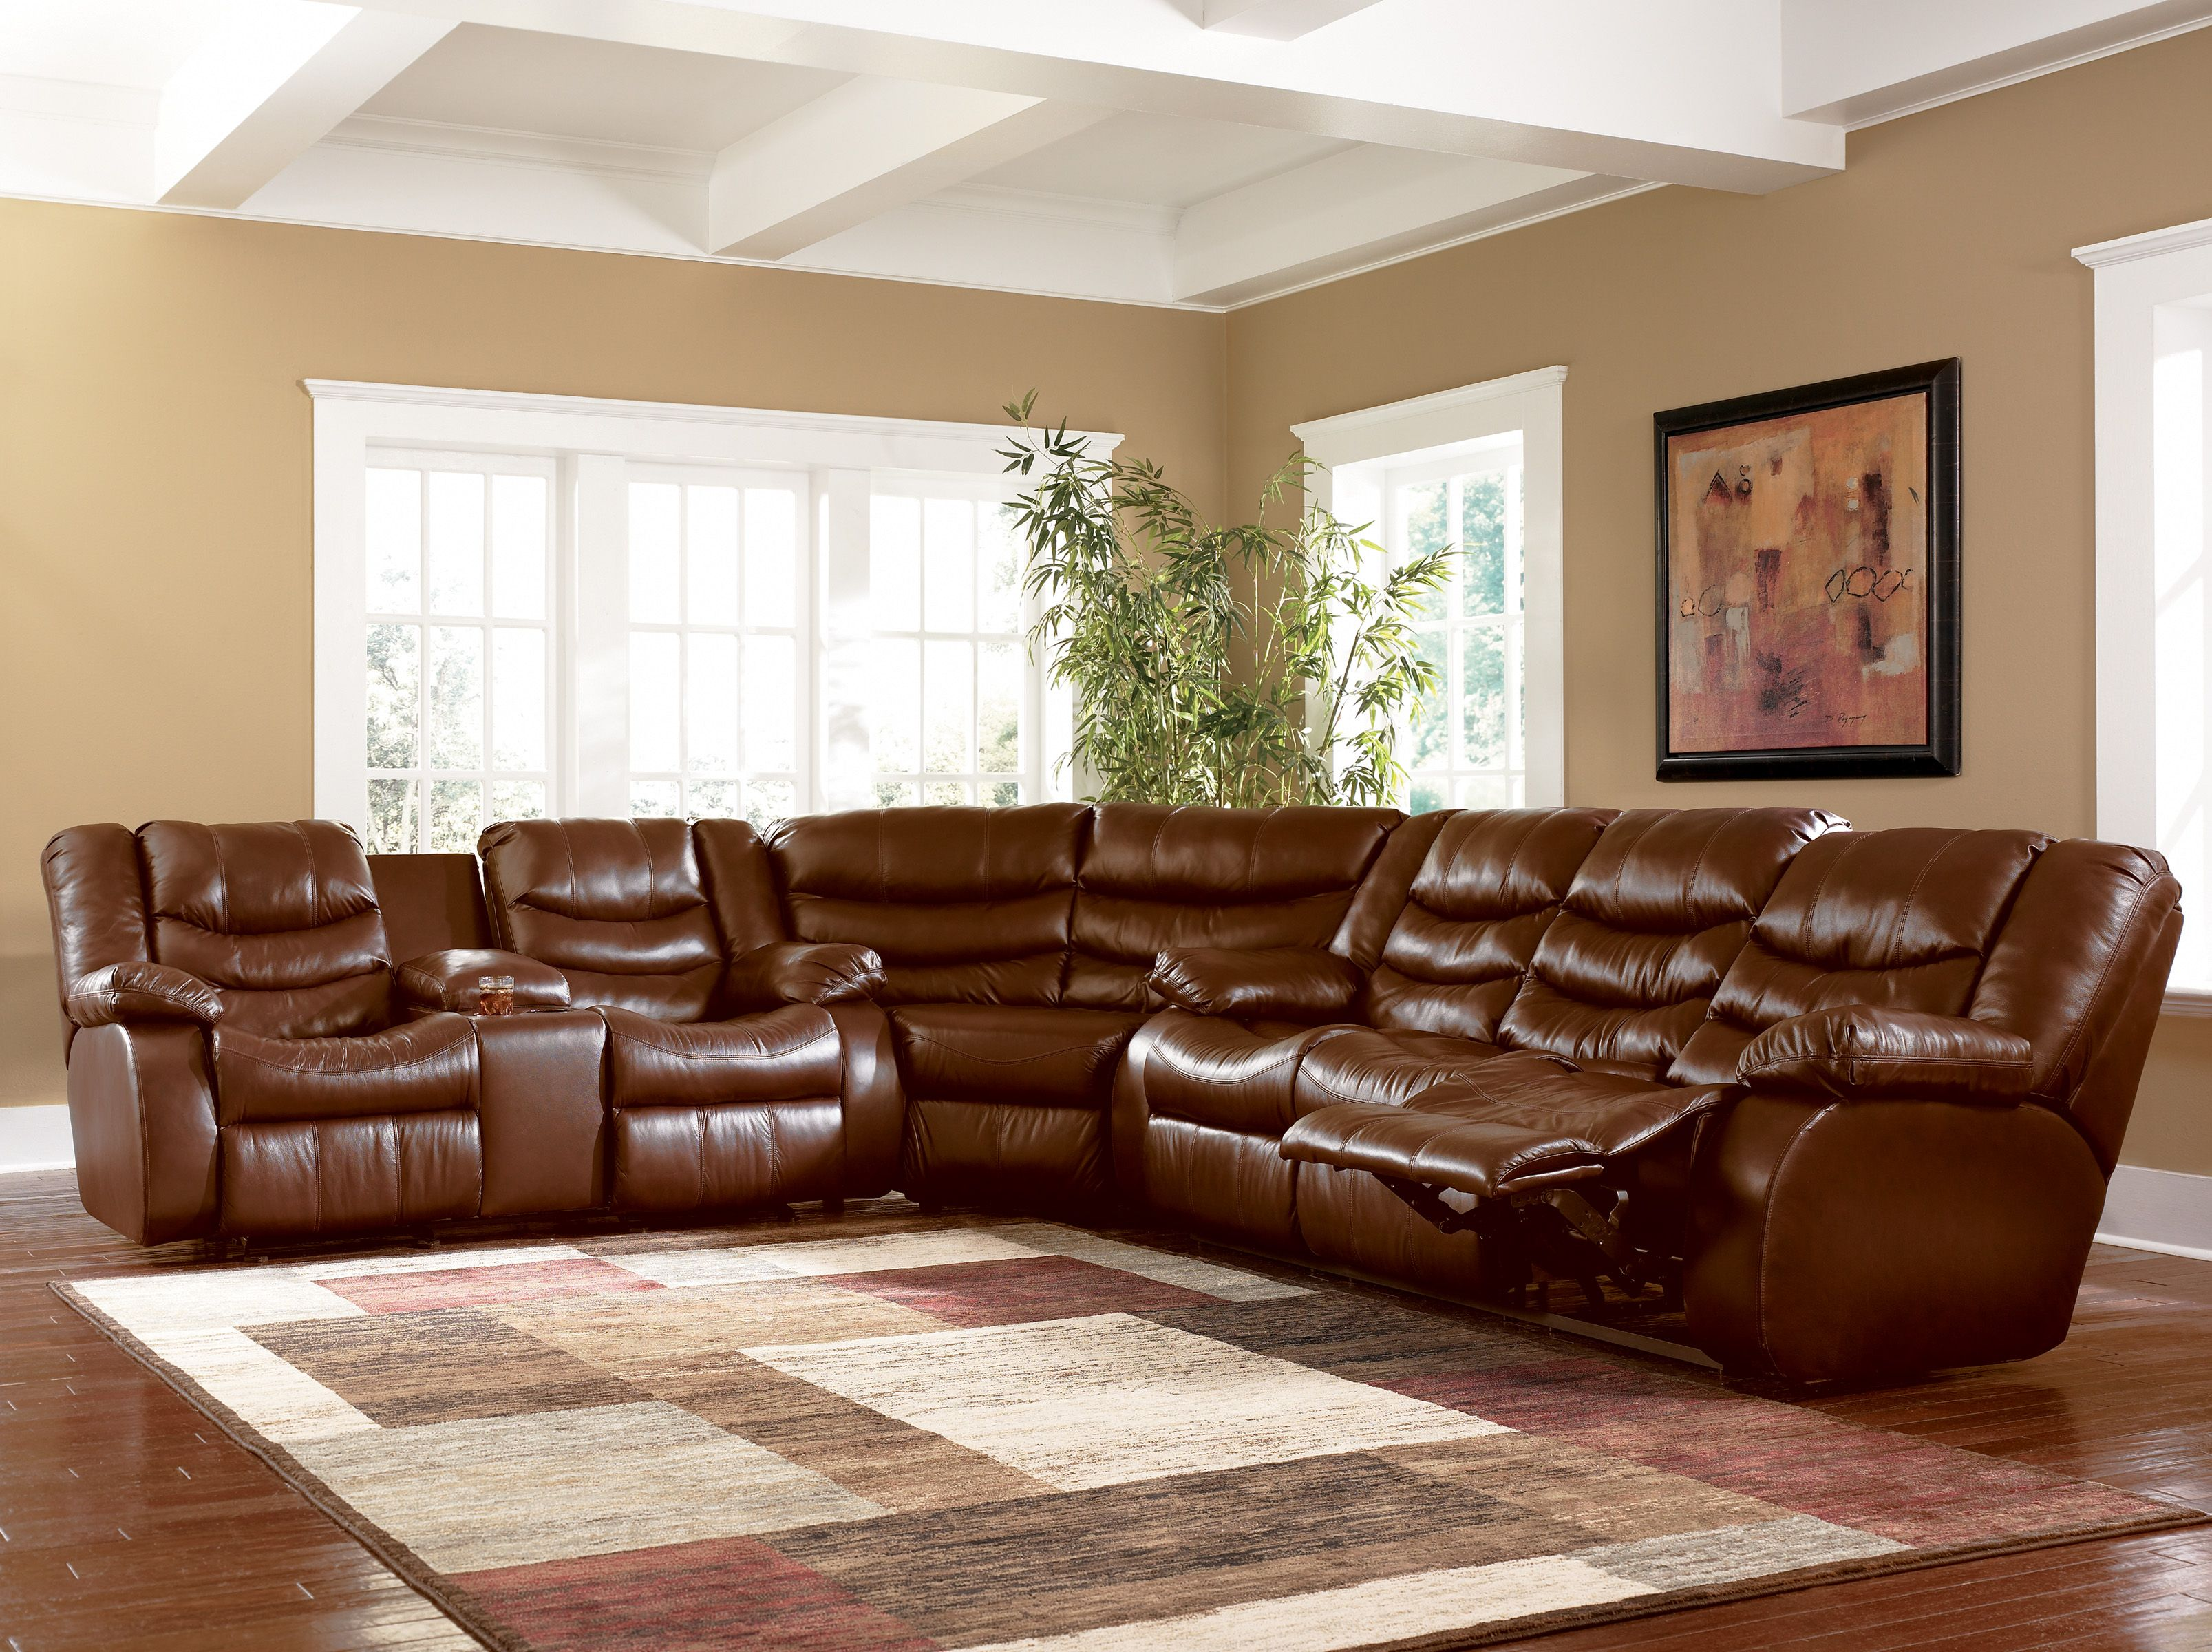 Images Of Burgundy Leather Sectionals Ashley